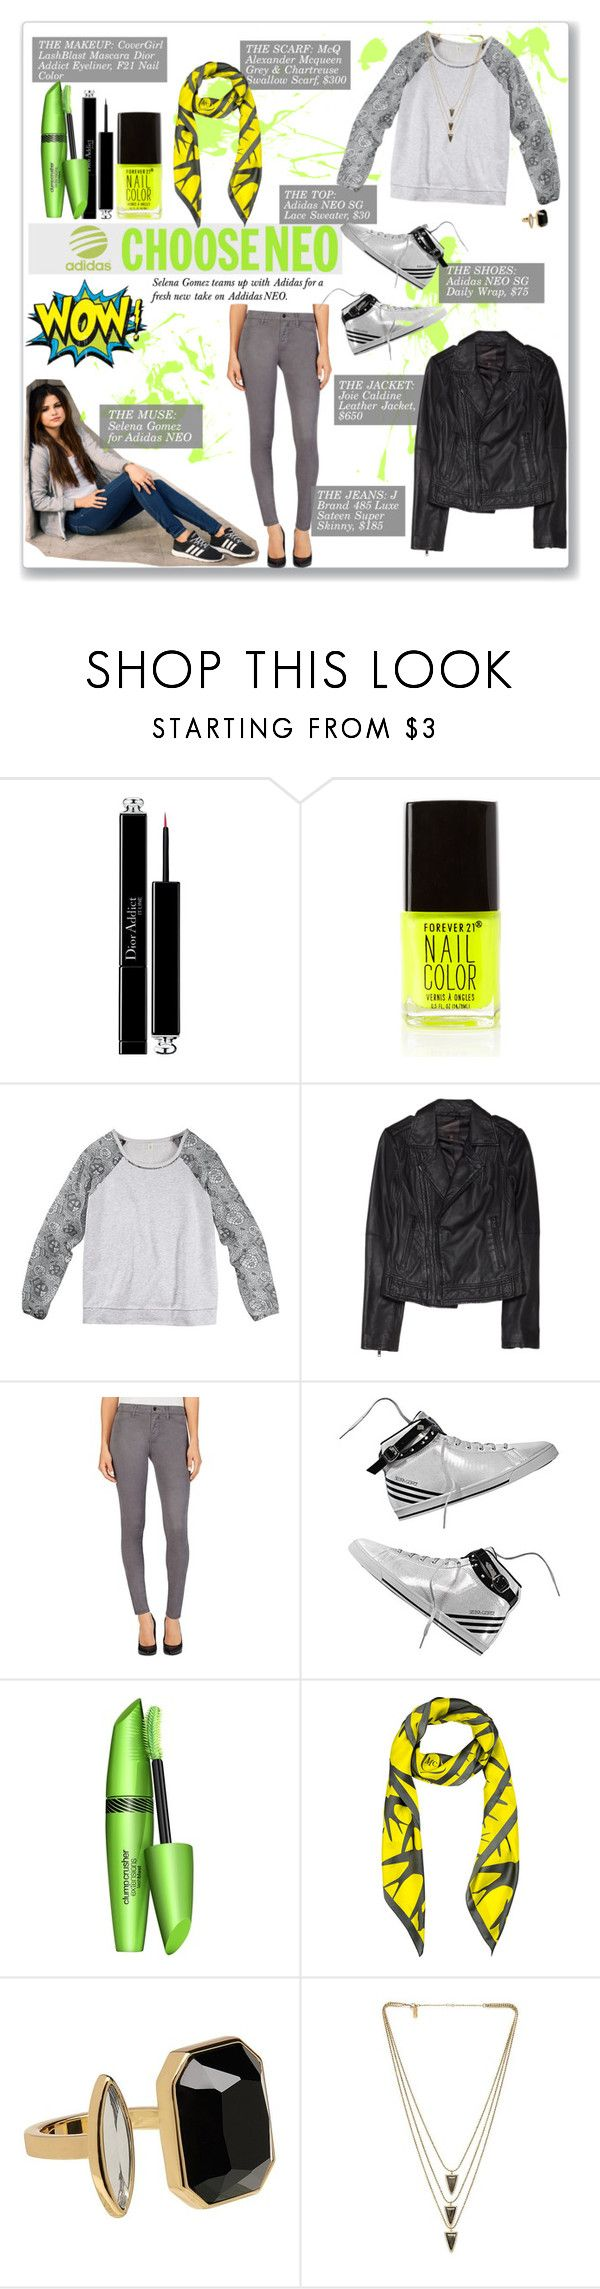 """""""Live Your Style with adidas NEO Label: Contest Entry"""" by coeurdcoeurs7 ❤ liked on Polyvore featuring Christian Dior, adidas NEO, Forever 21, Joie, J Brand, COVERGIRL, McQ by Alexander McQueen and Melanie Auld"""